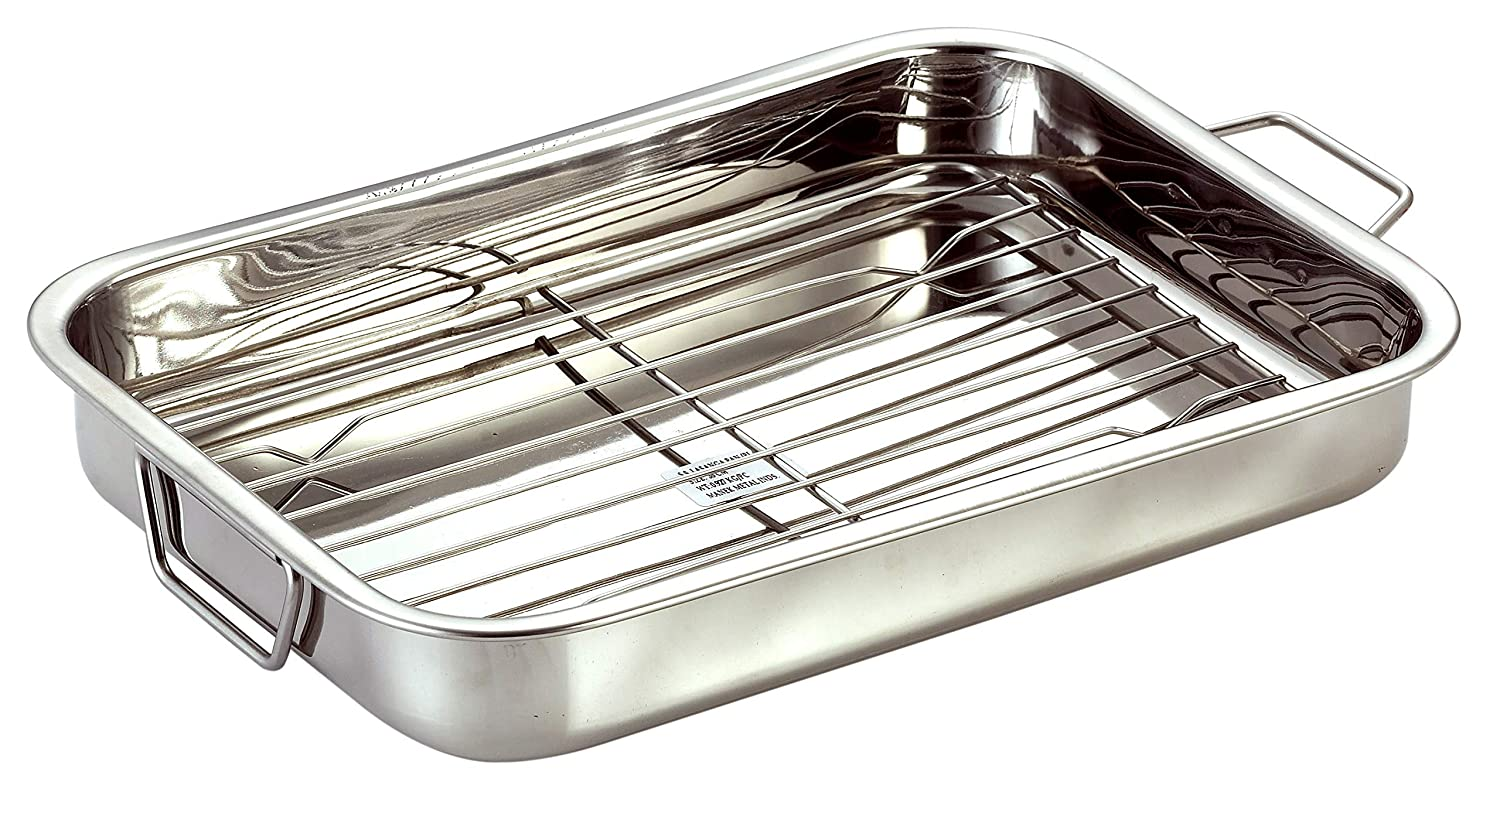 Chef Direct Stainless Steel Roast Pan With Folding Handles // Chef Direct // Rustidera Inox Con Asas Abatibles (25 cm x 18 cm) Manek Metal Industries 433